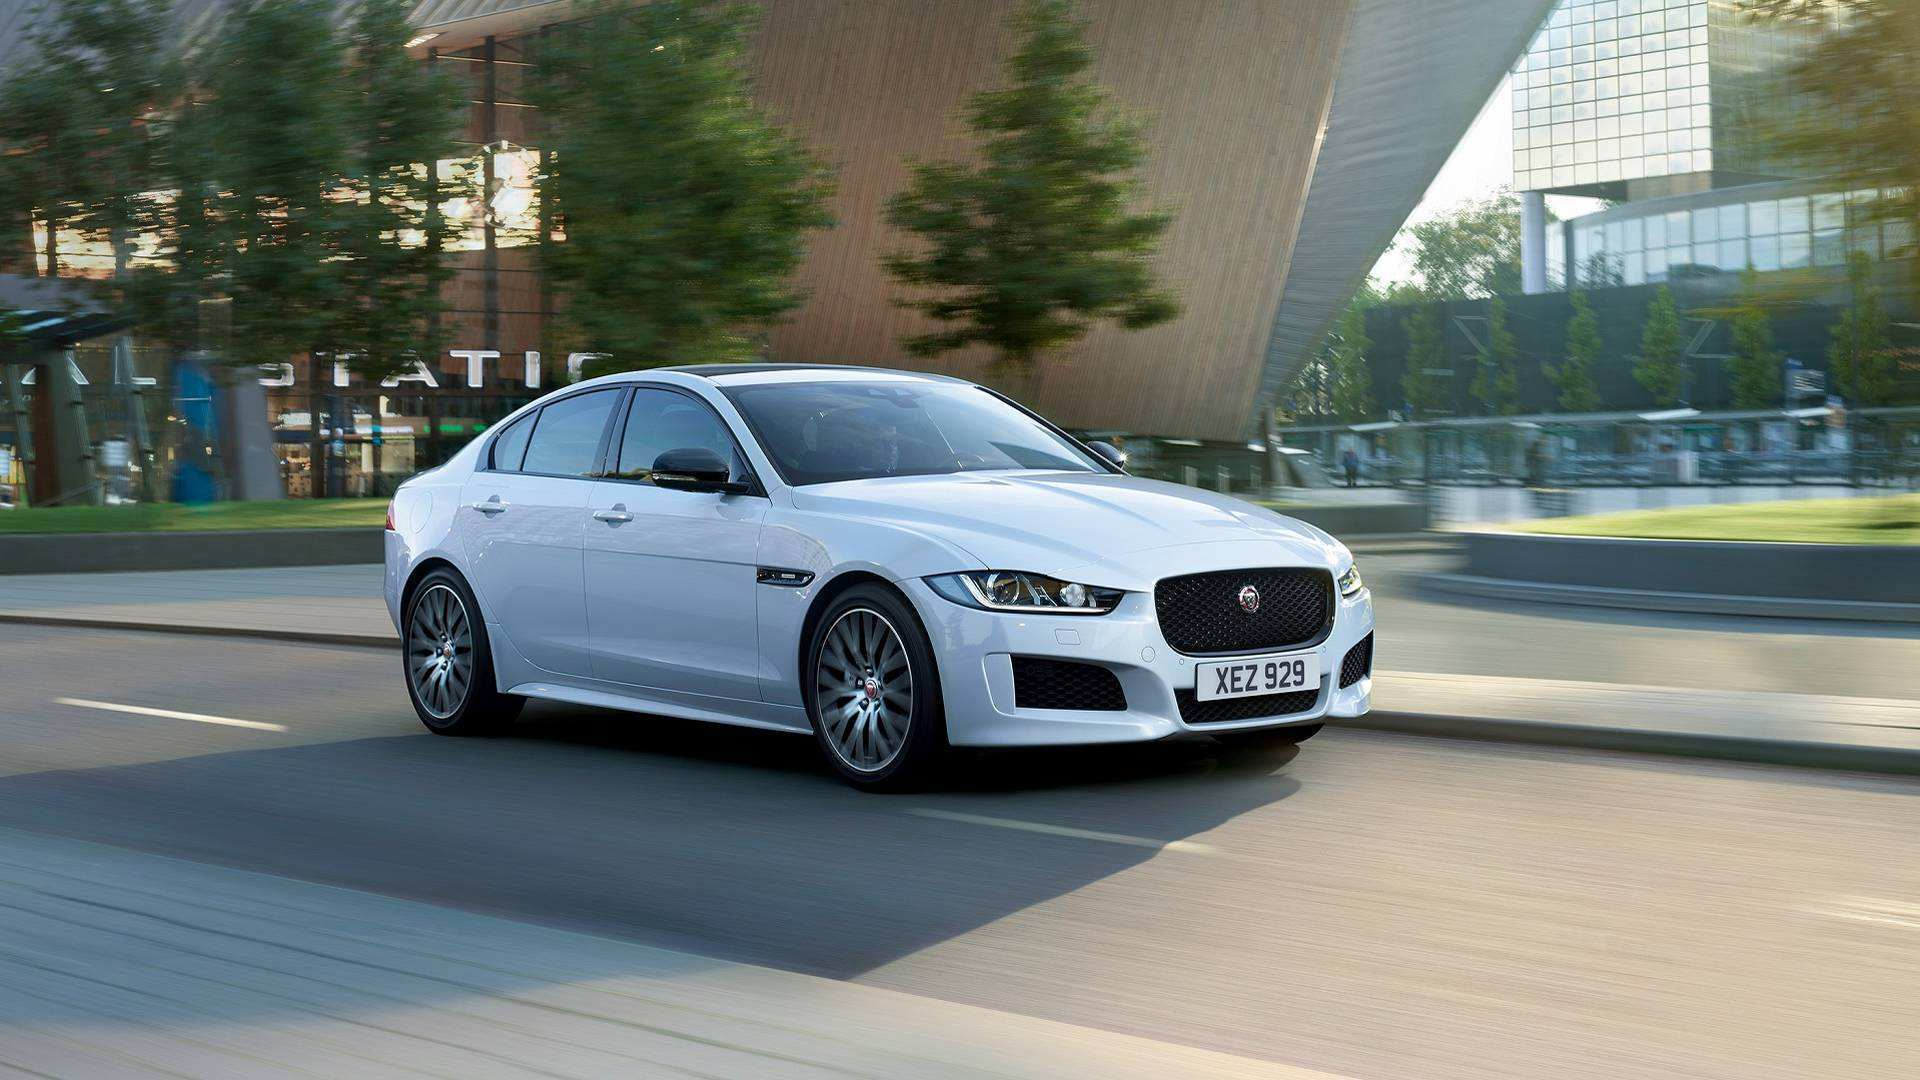 69 New 2020 Jaguar Xe Landmark Redesign for 2020 Jaguar Xe Landmark